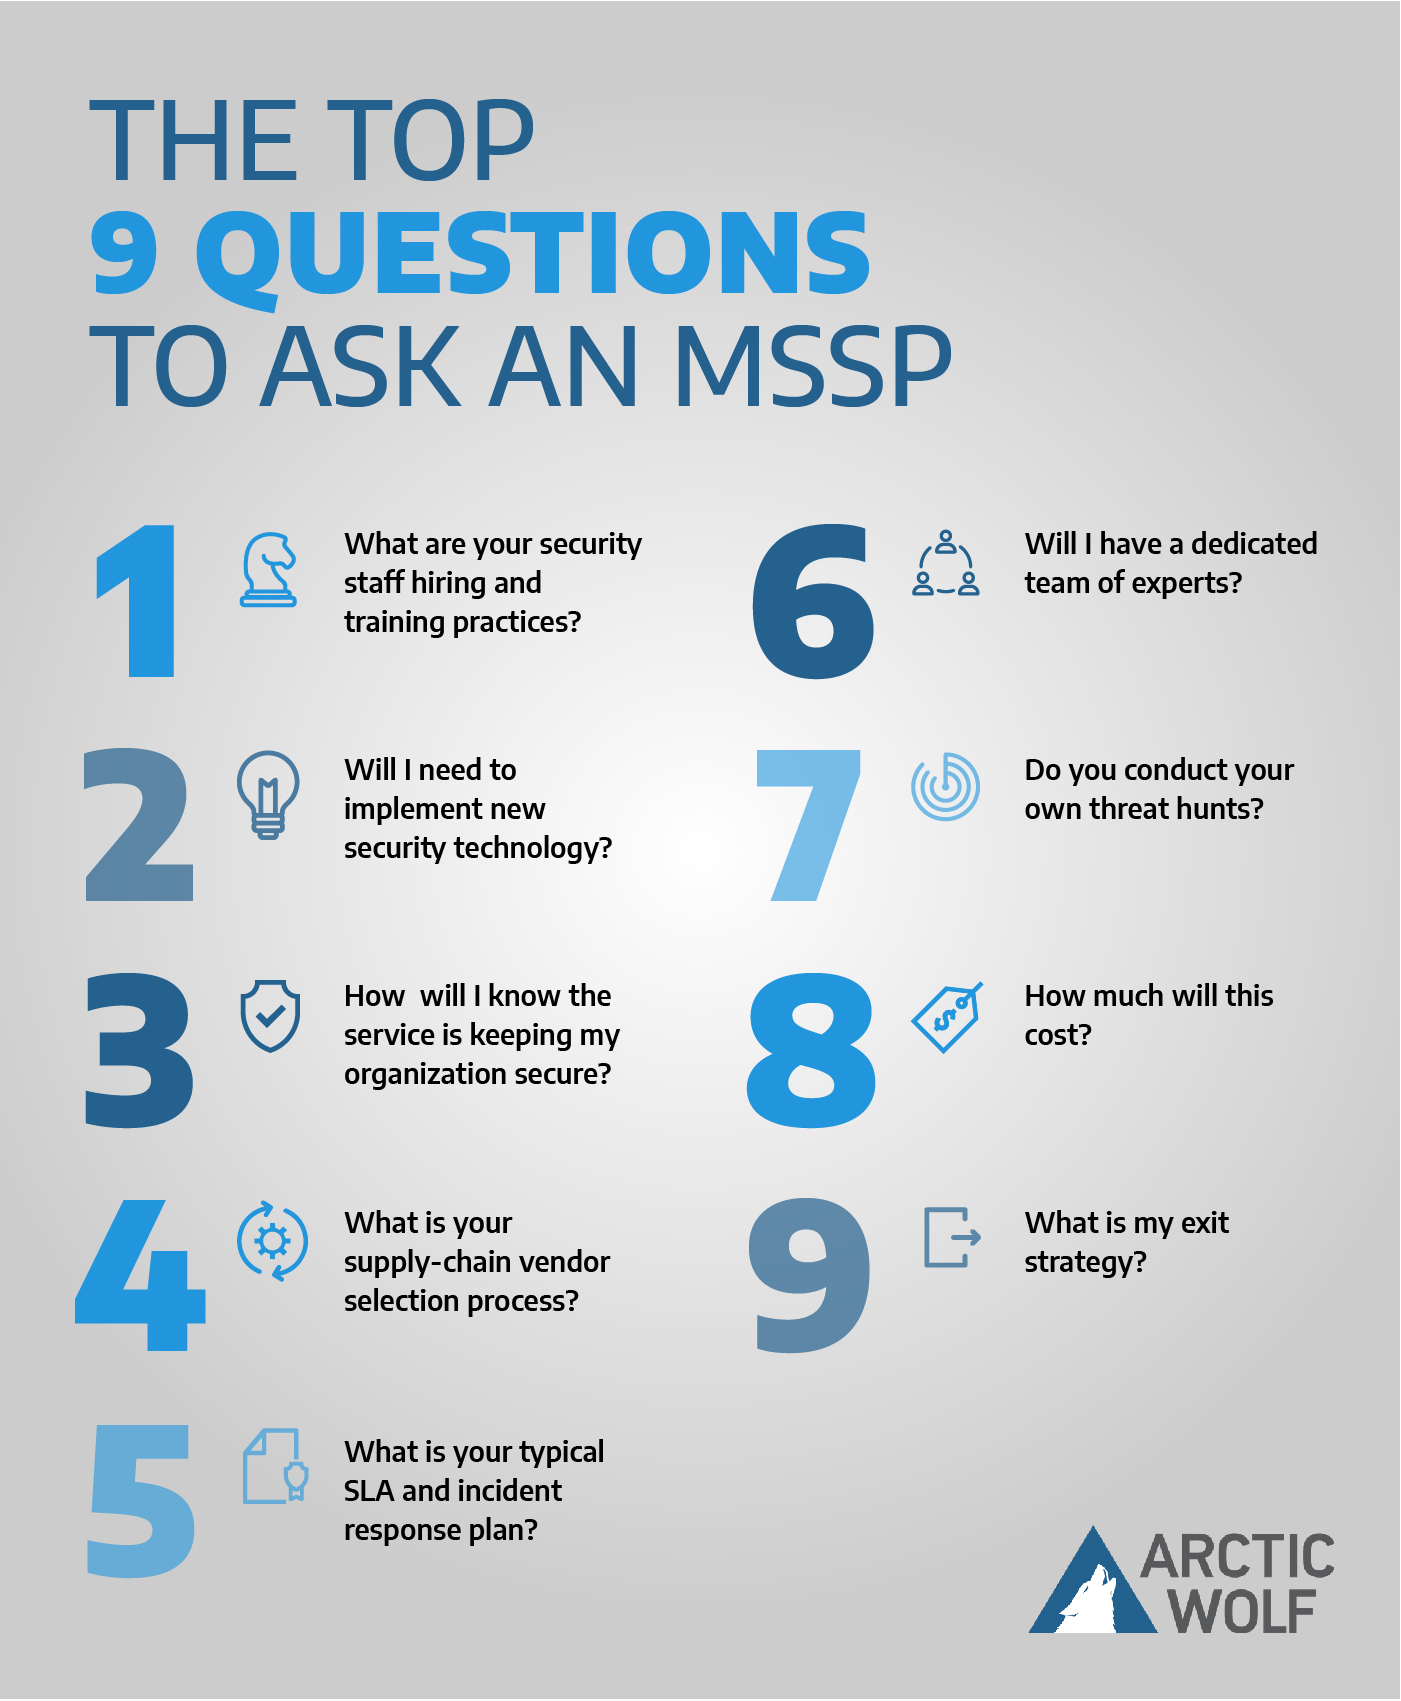 Graphic featuring the top 9 questions to ask an MSSP from the headings listed above.